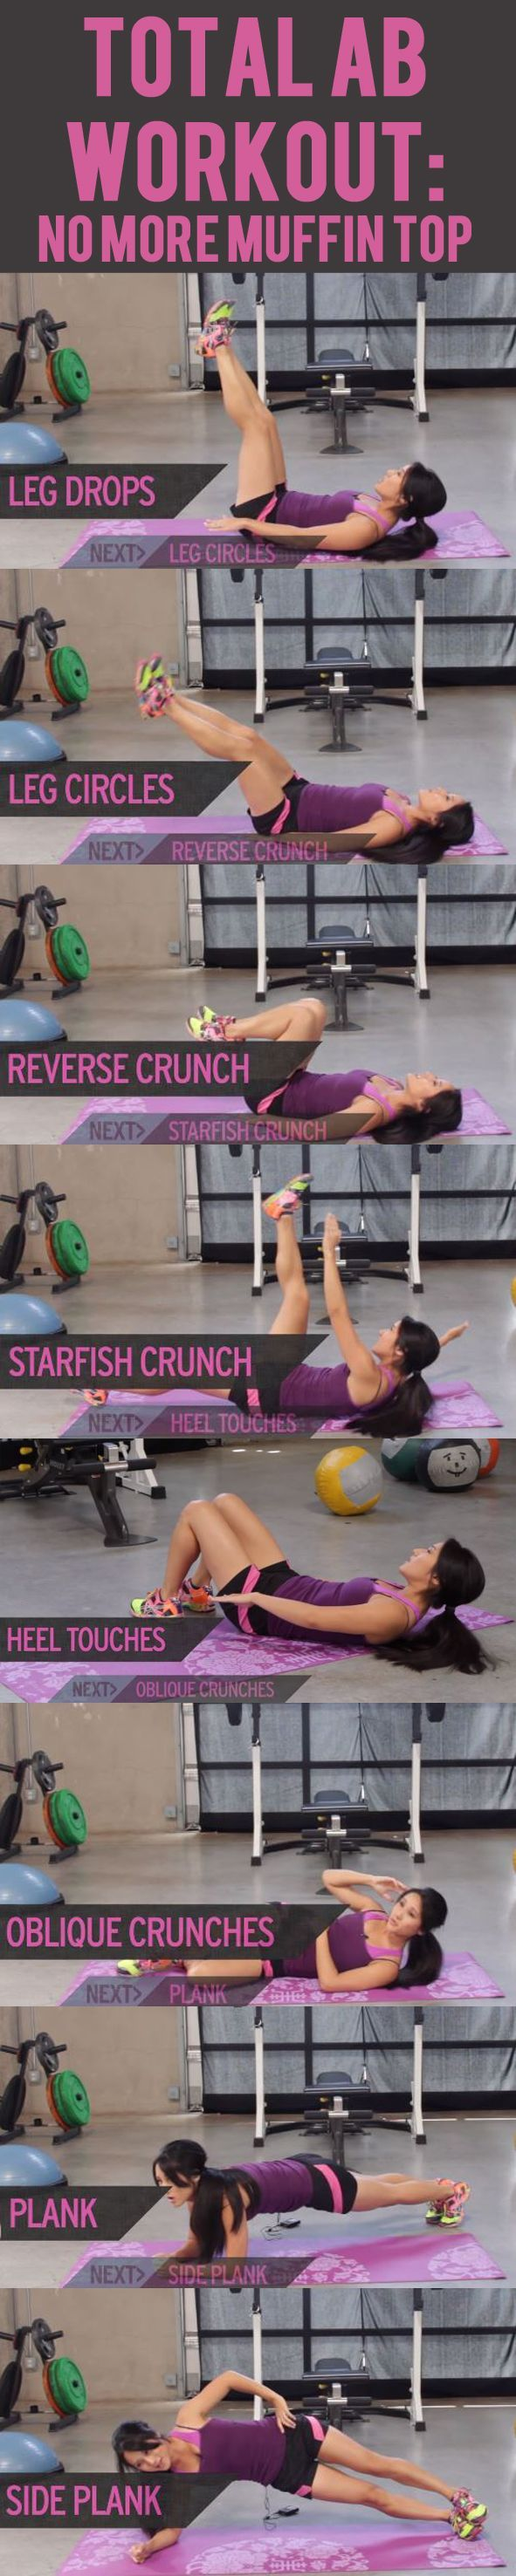 This workout will show you some of the best ab exercises for toning and slimming your waist and abs to banish that muffin top for good. #exercise #workout #abs #sixpack #fitness